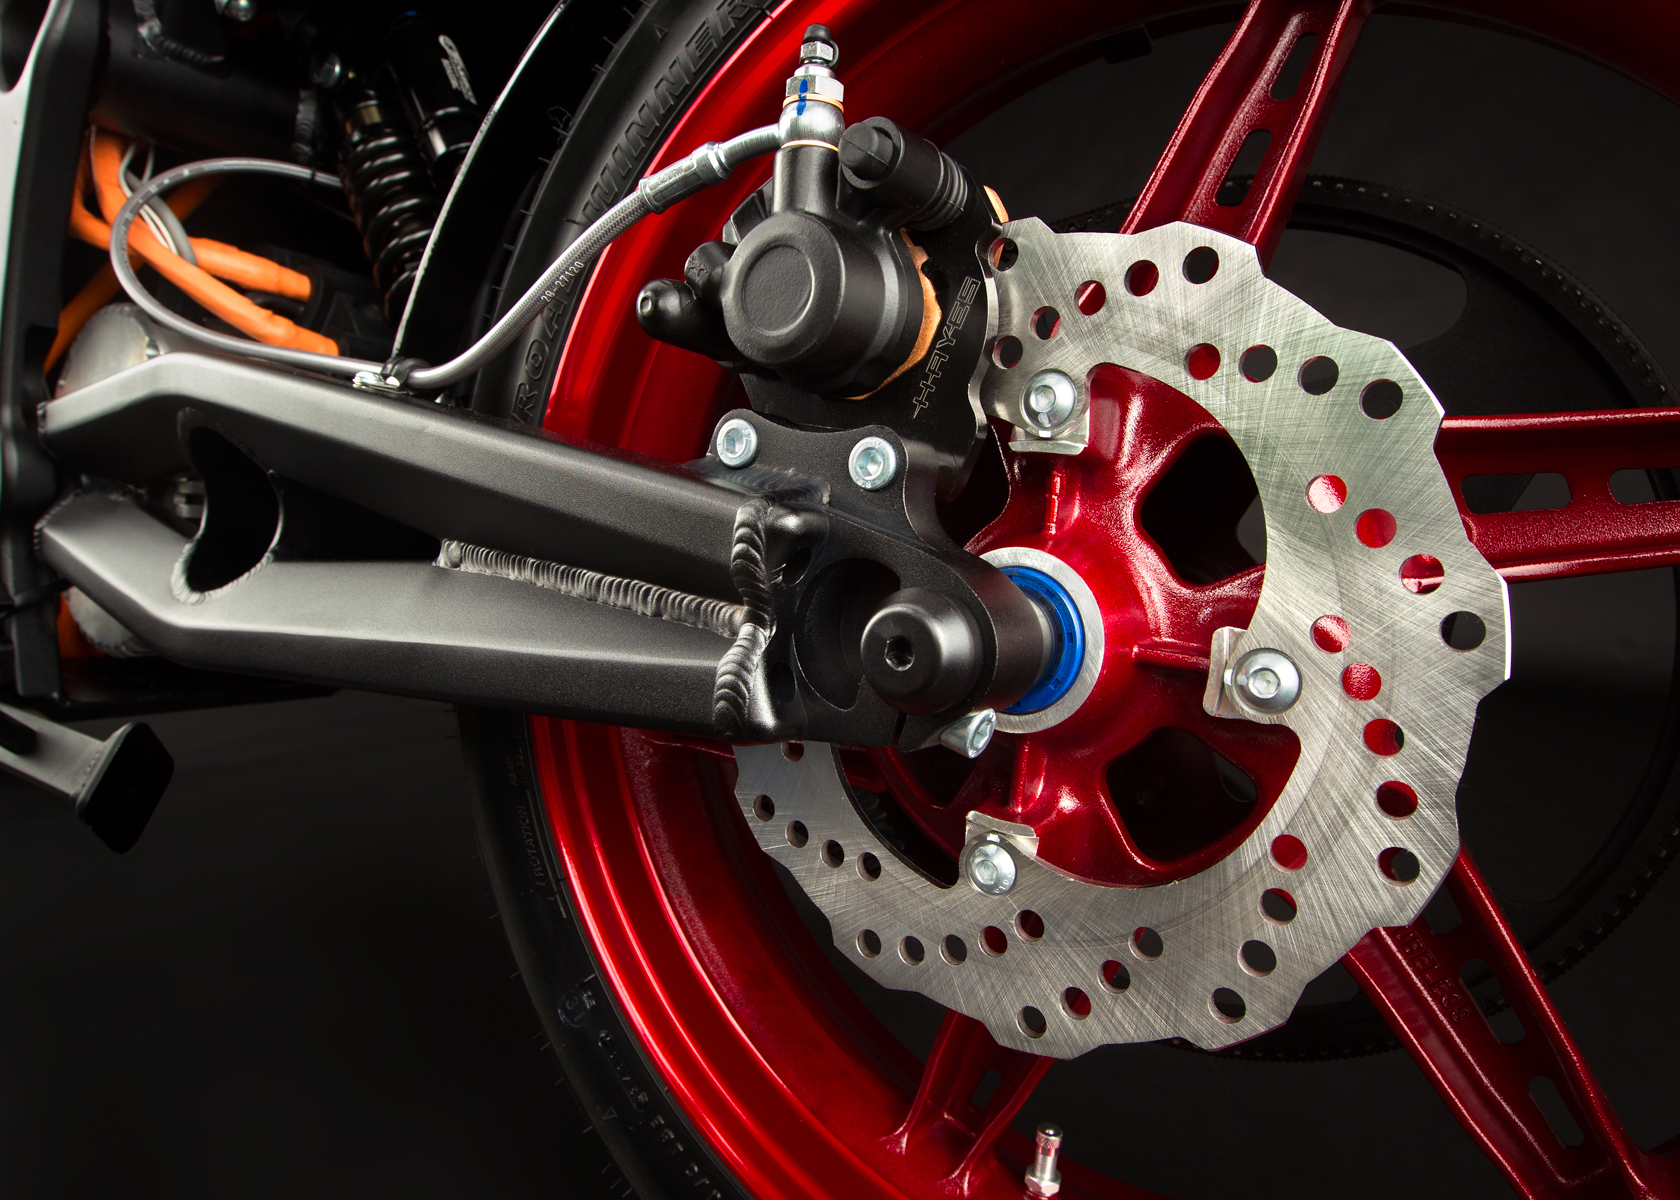 2012 Zero S Electric Motorcycle: Back Brake